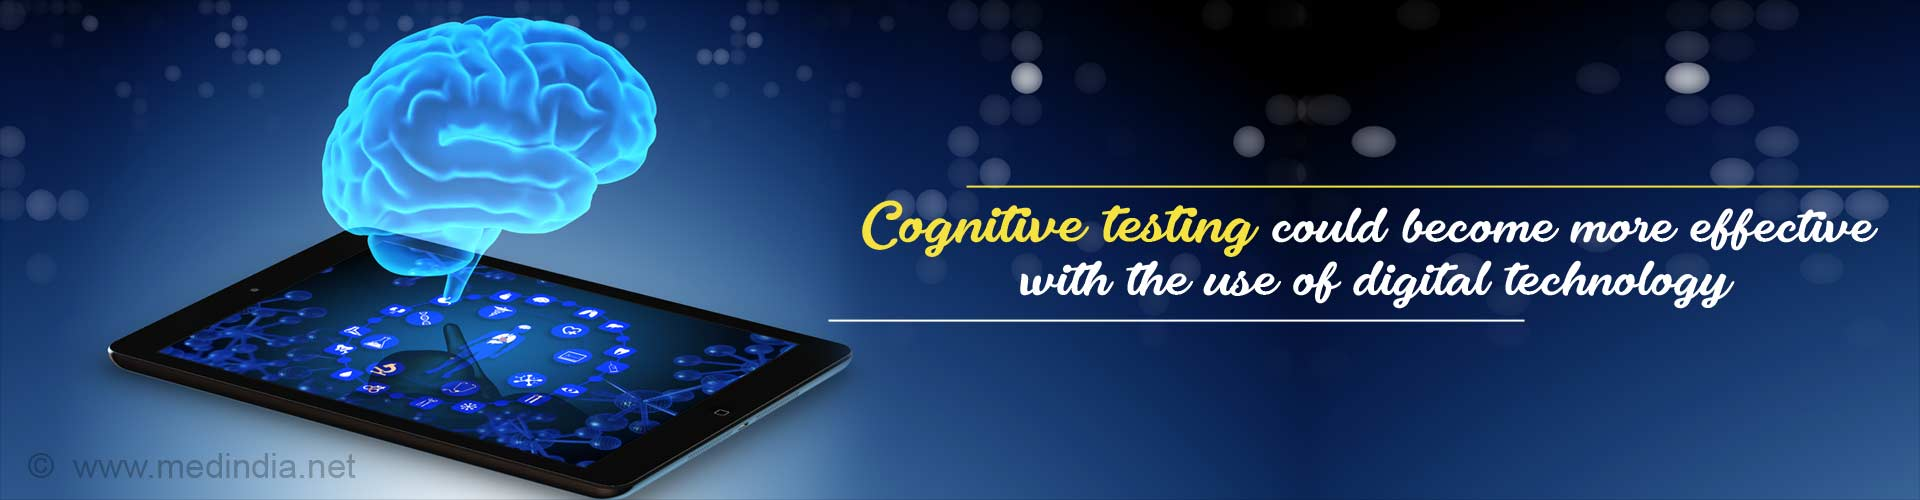 Digital Neuropsychology Could be the Future in Cognitive Testing